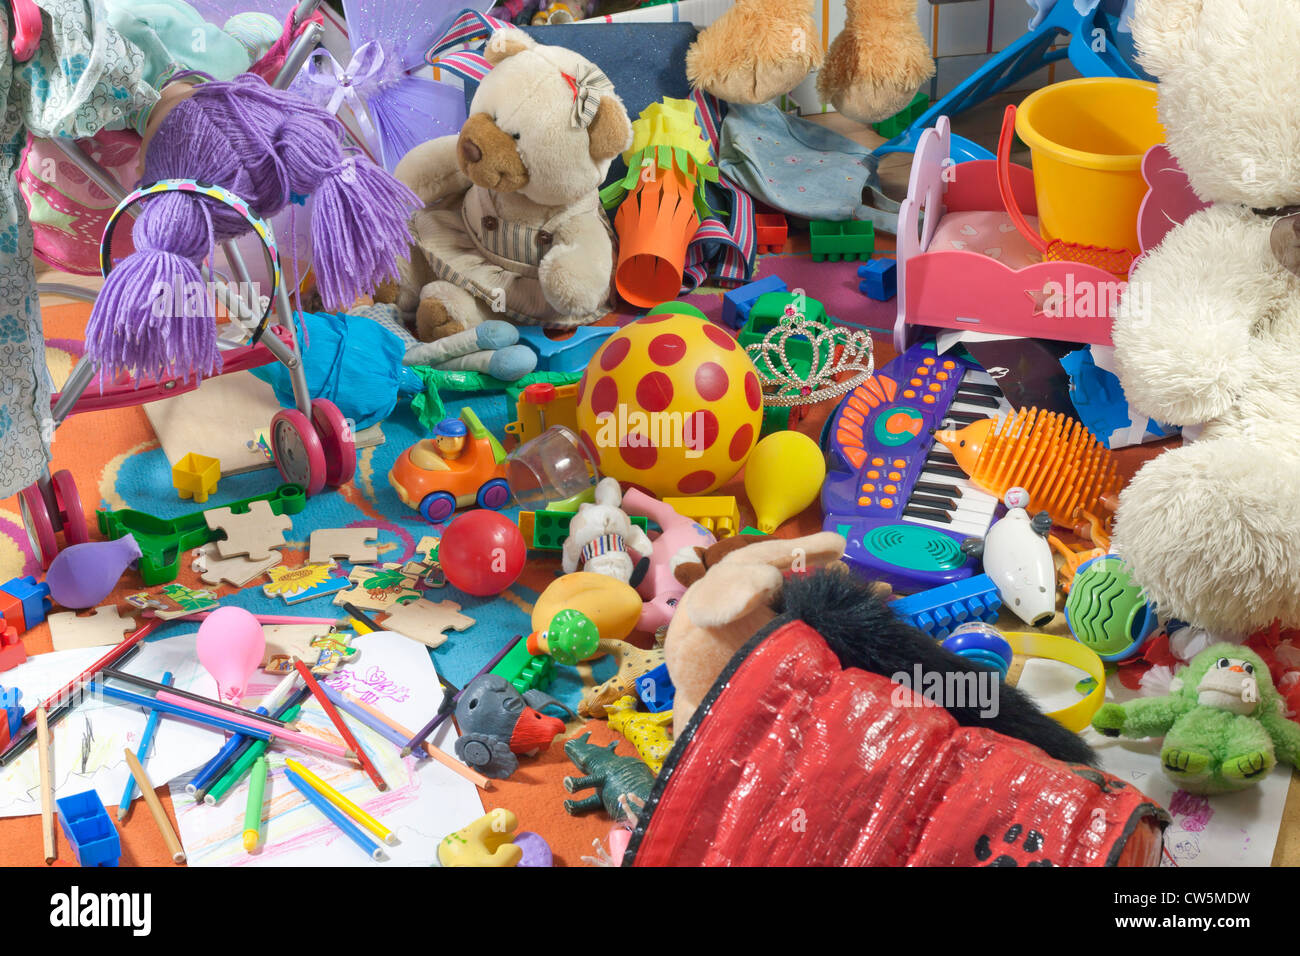 Messy kids room with toys and other accessories Stock Photo ...